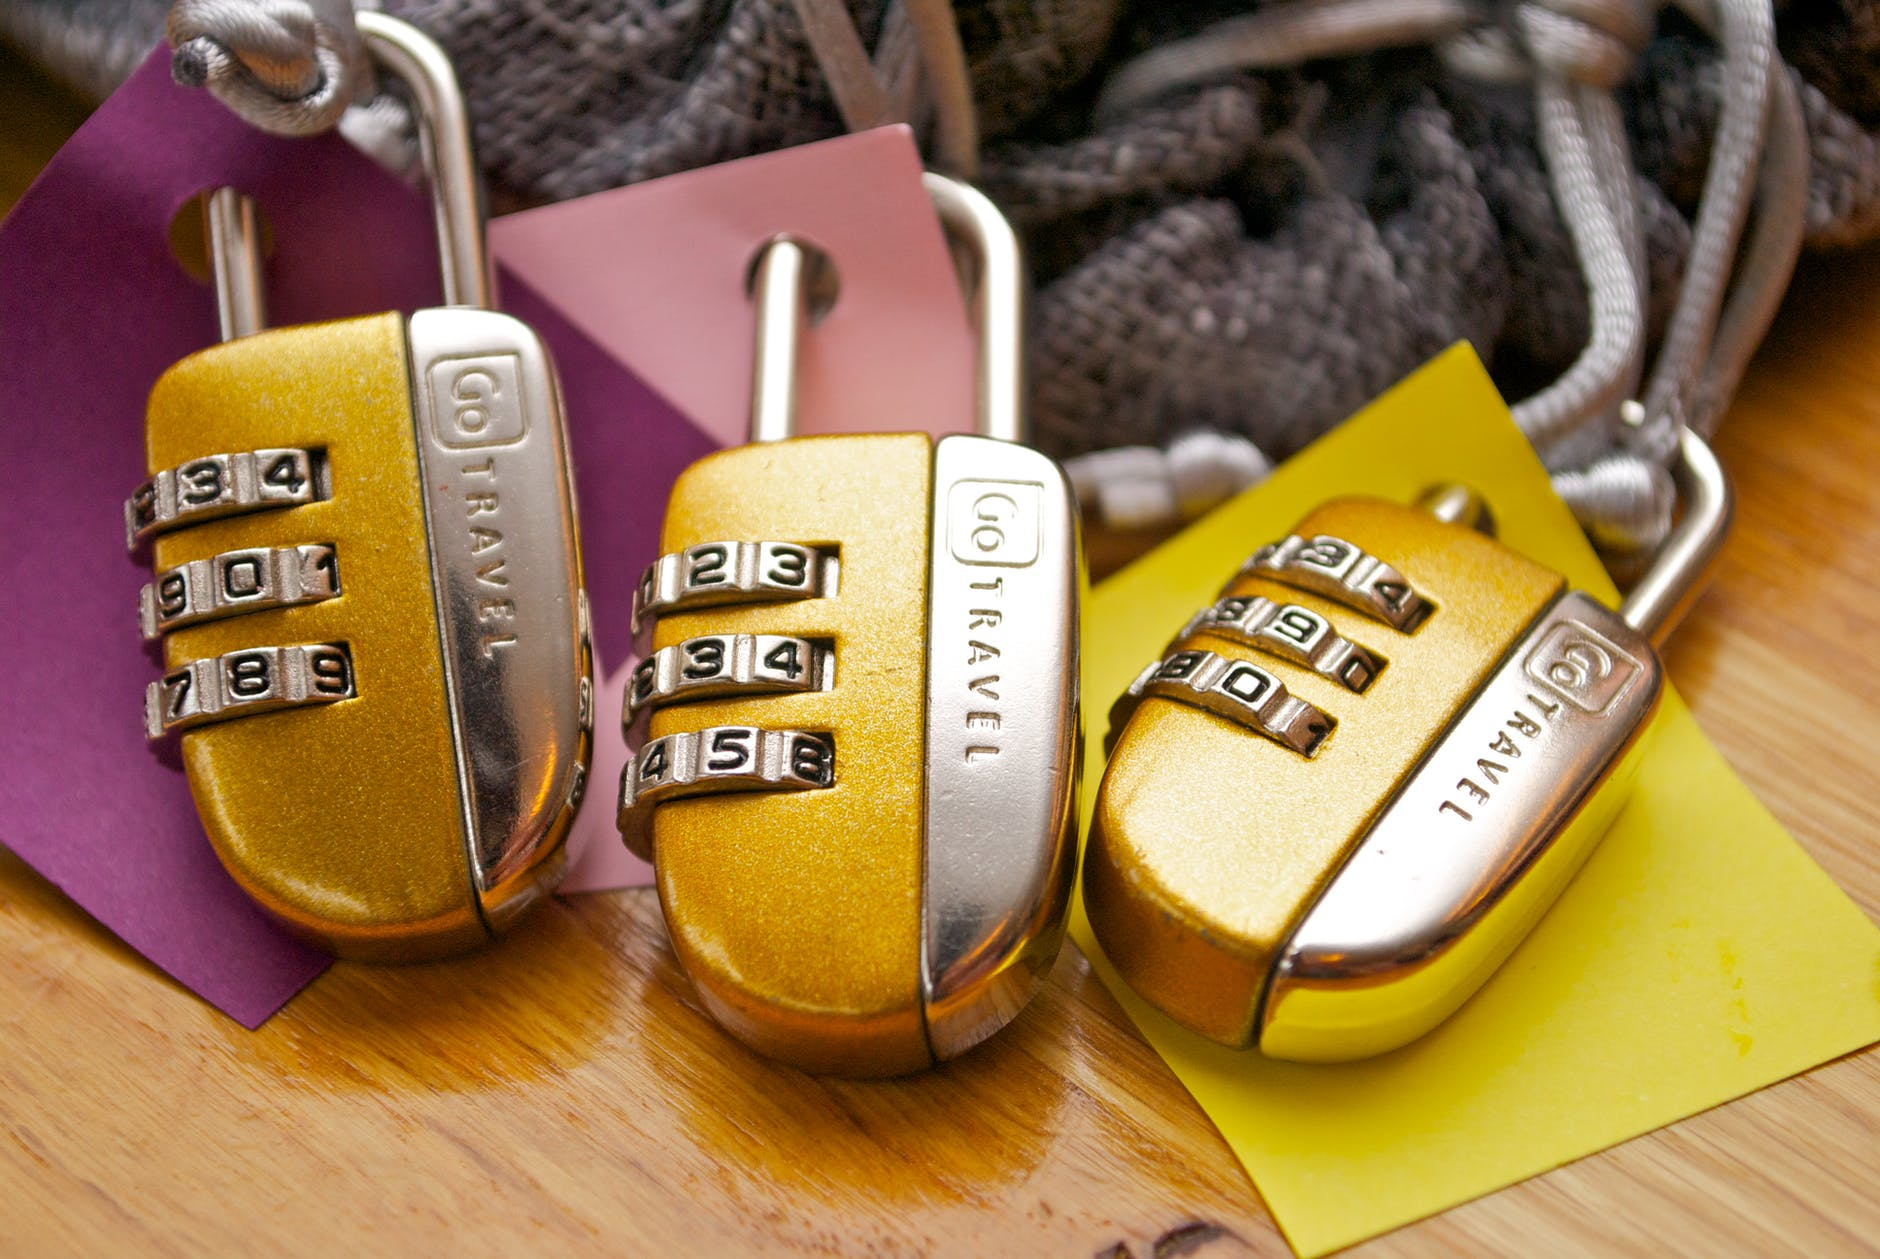 three gold and silver combination padlocks